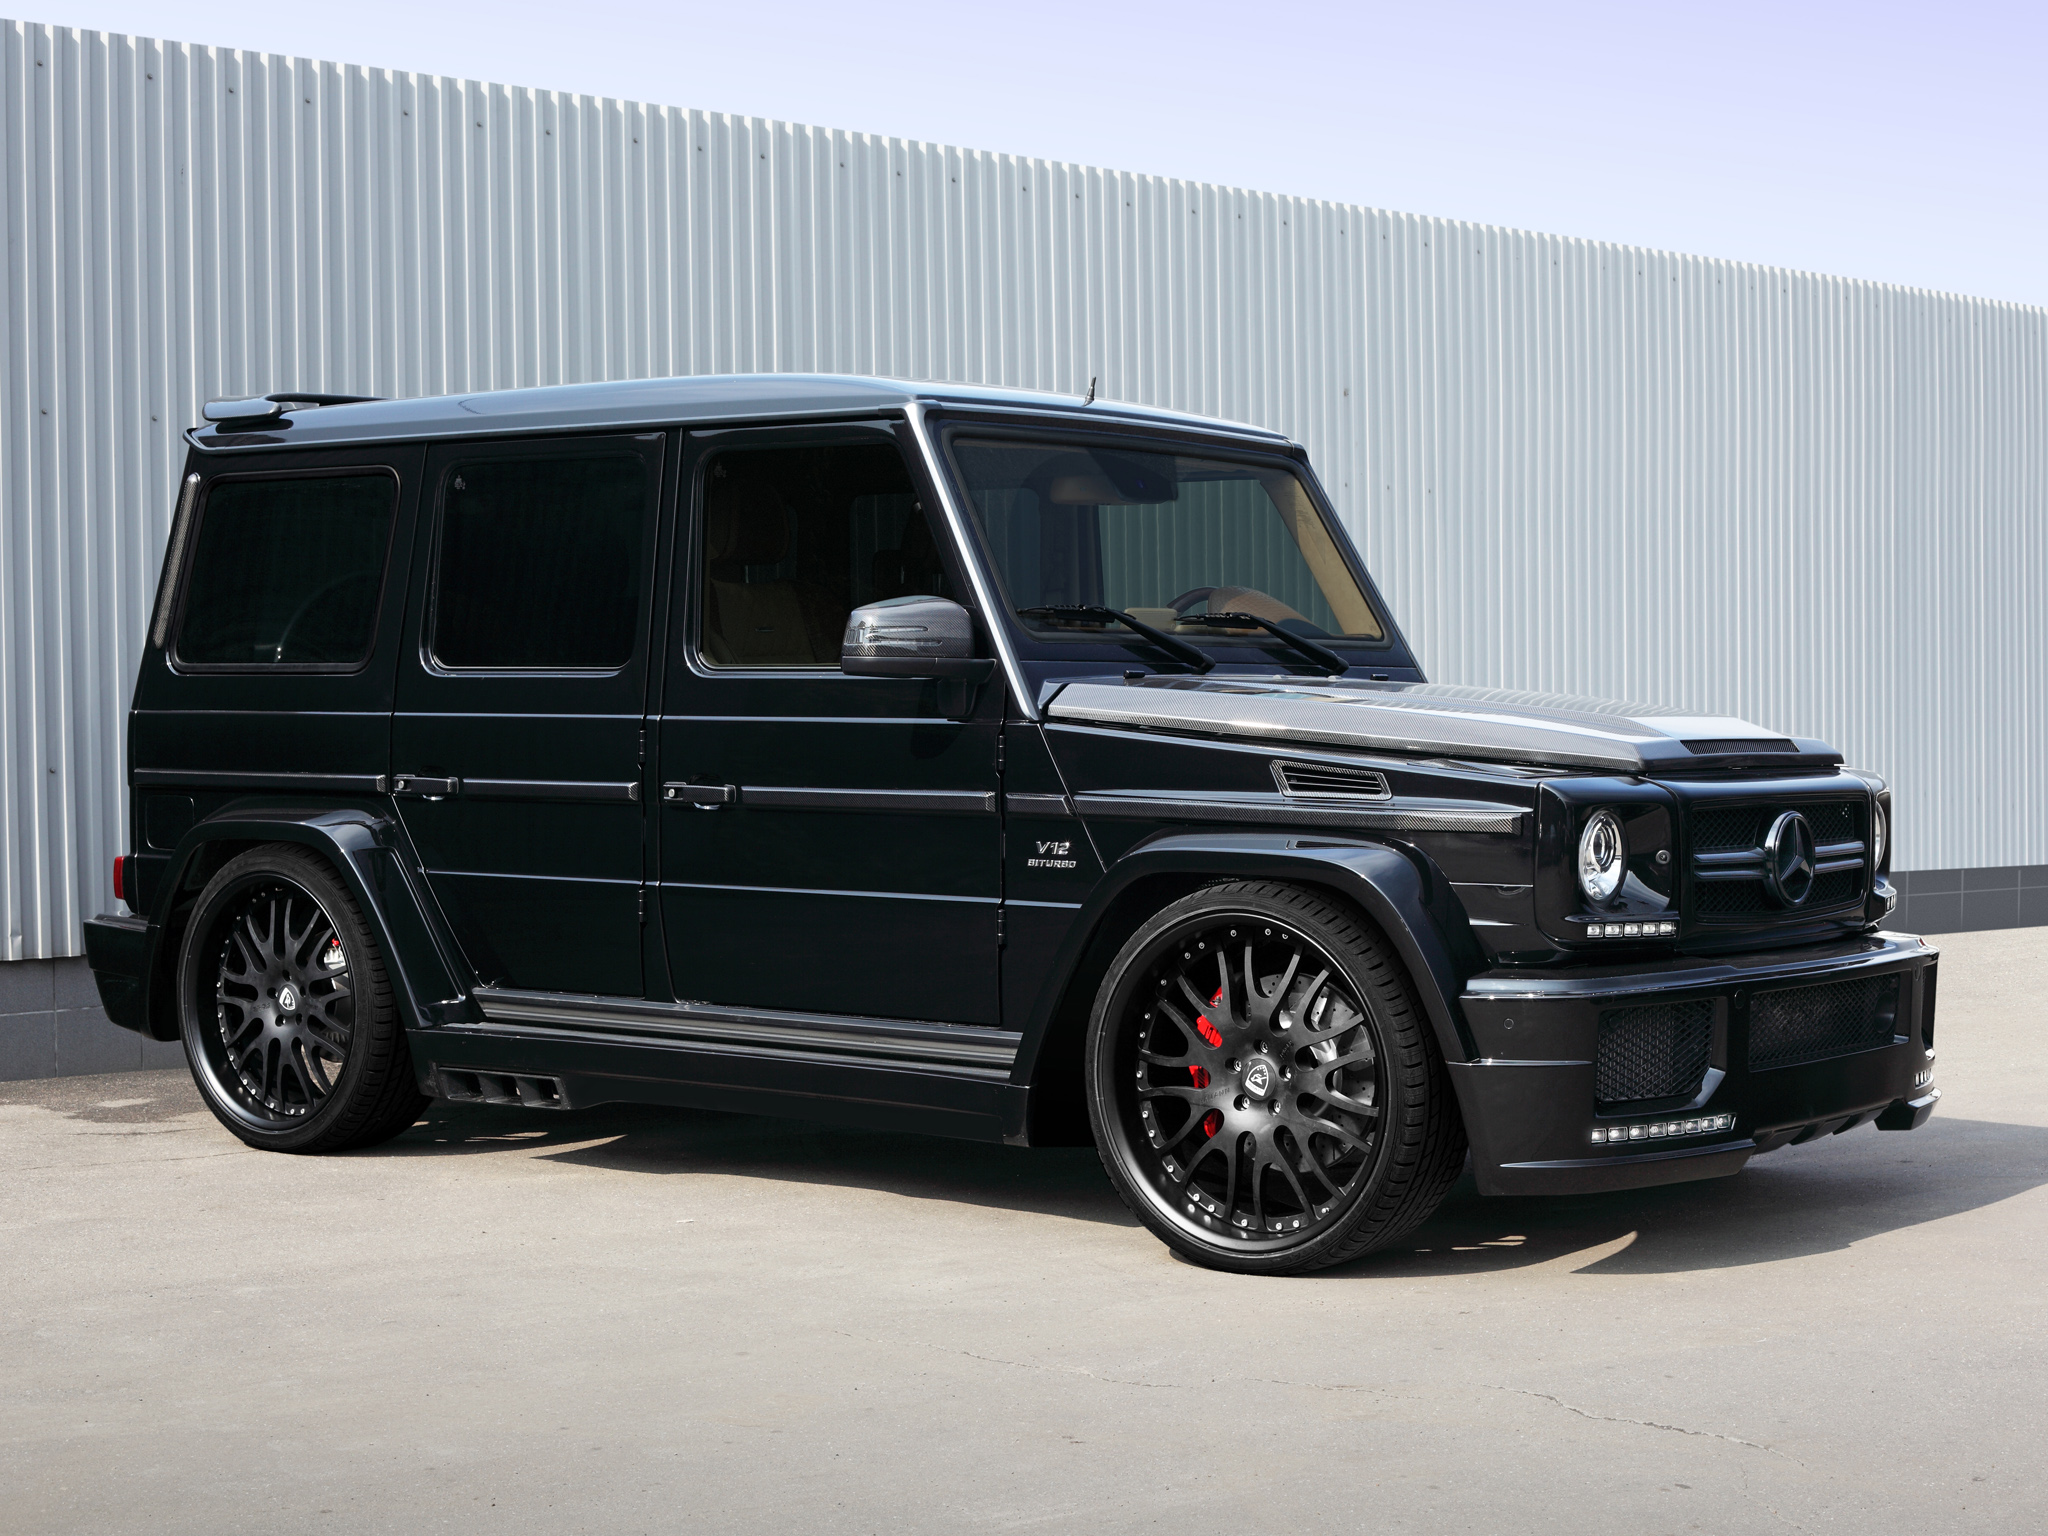 2013 hamann mercedes benz g65 amg tuning suv v12 wallpaper for Mercedes benz g wagon v12